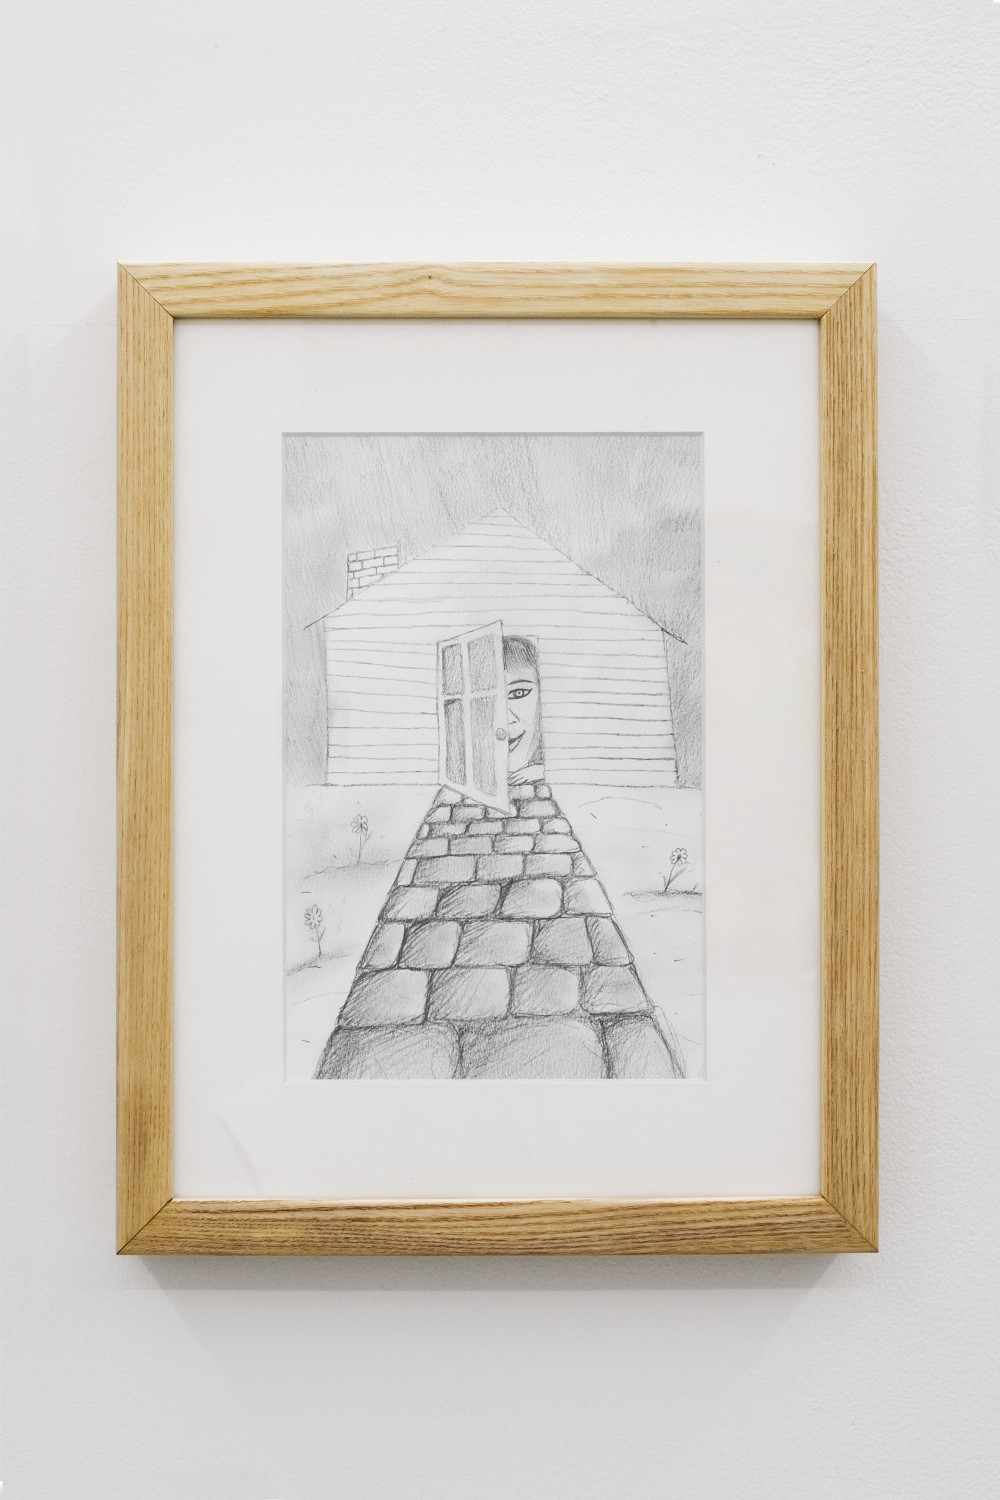 Quintessa Matranga Rocky Road, 2016 Graphite on paper